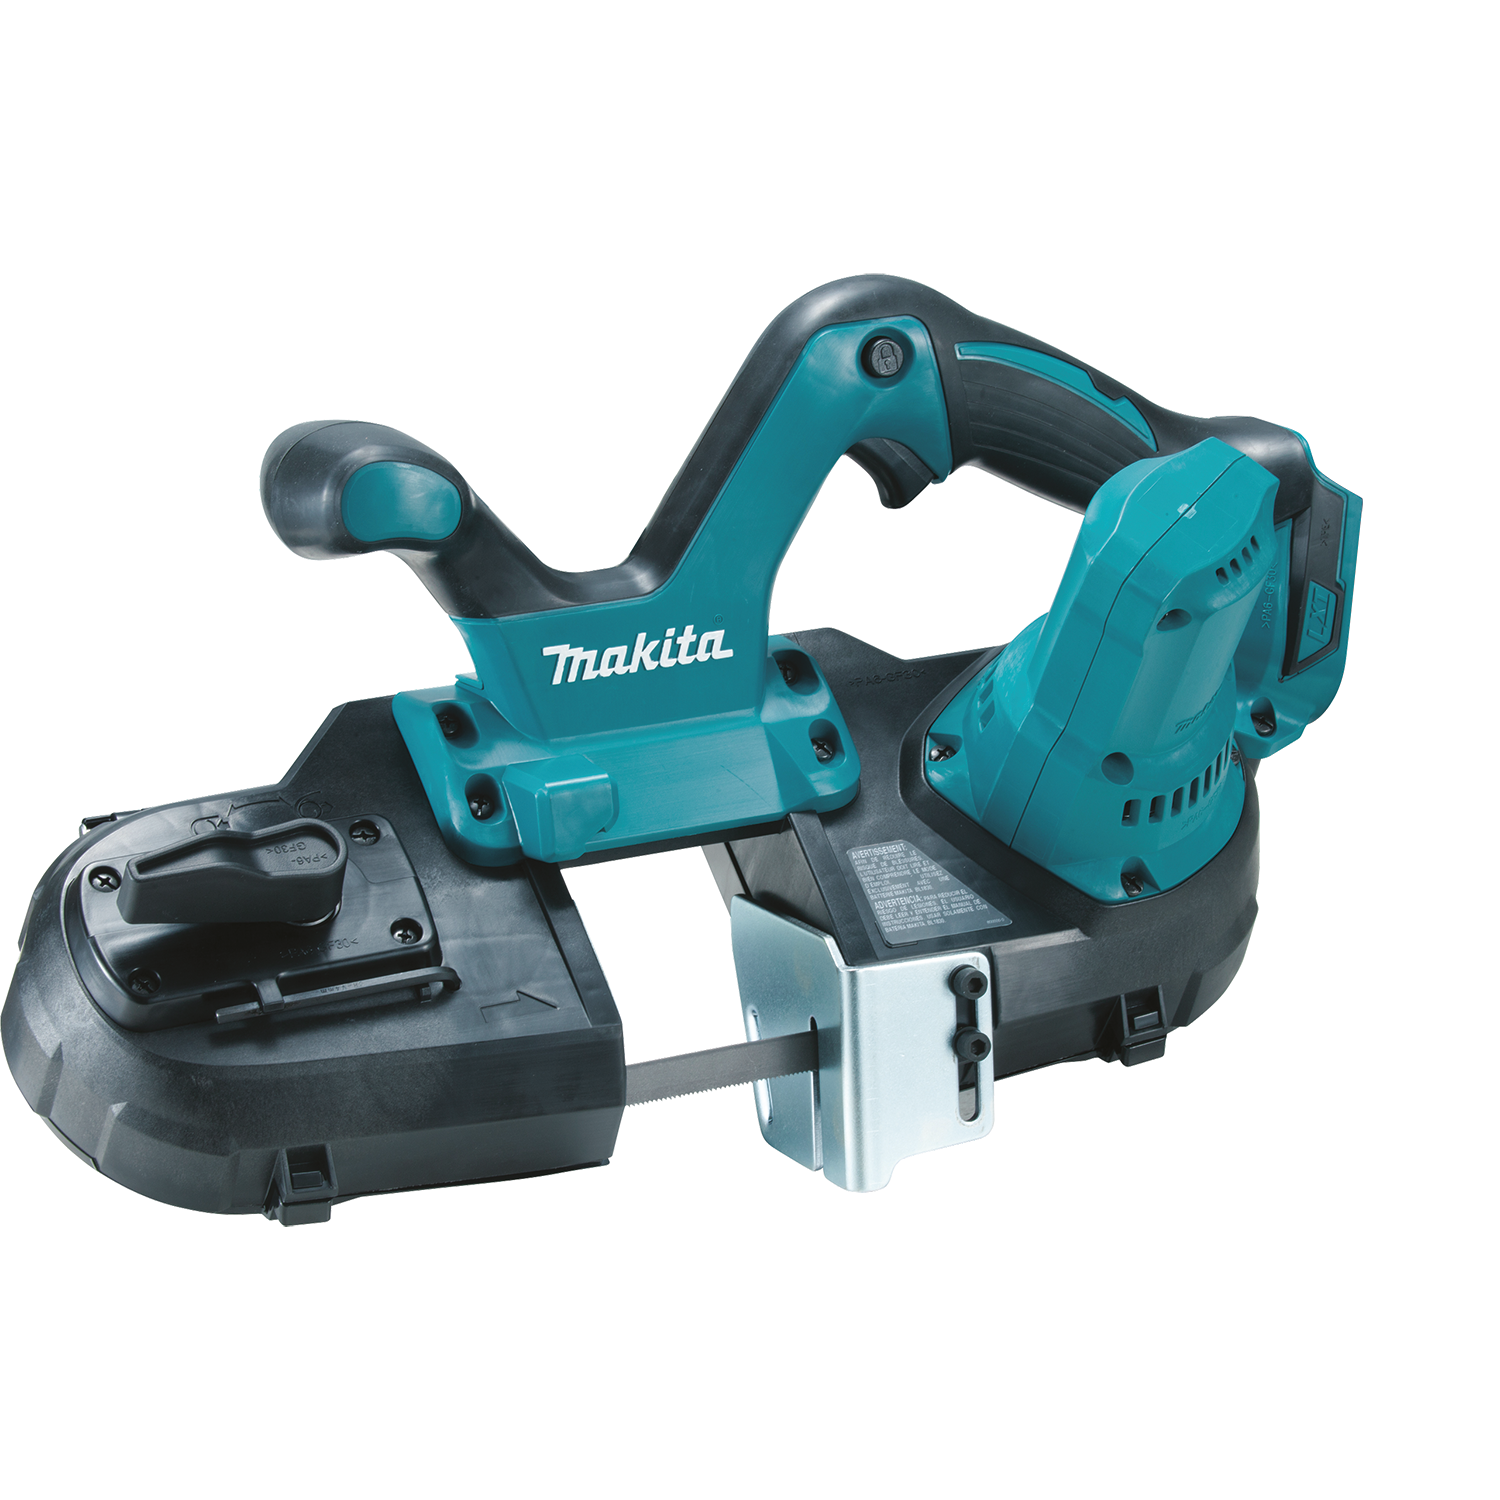 Makita usa product details xbp01z xbp01z greentooth Image collections